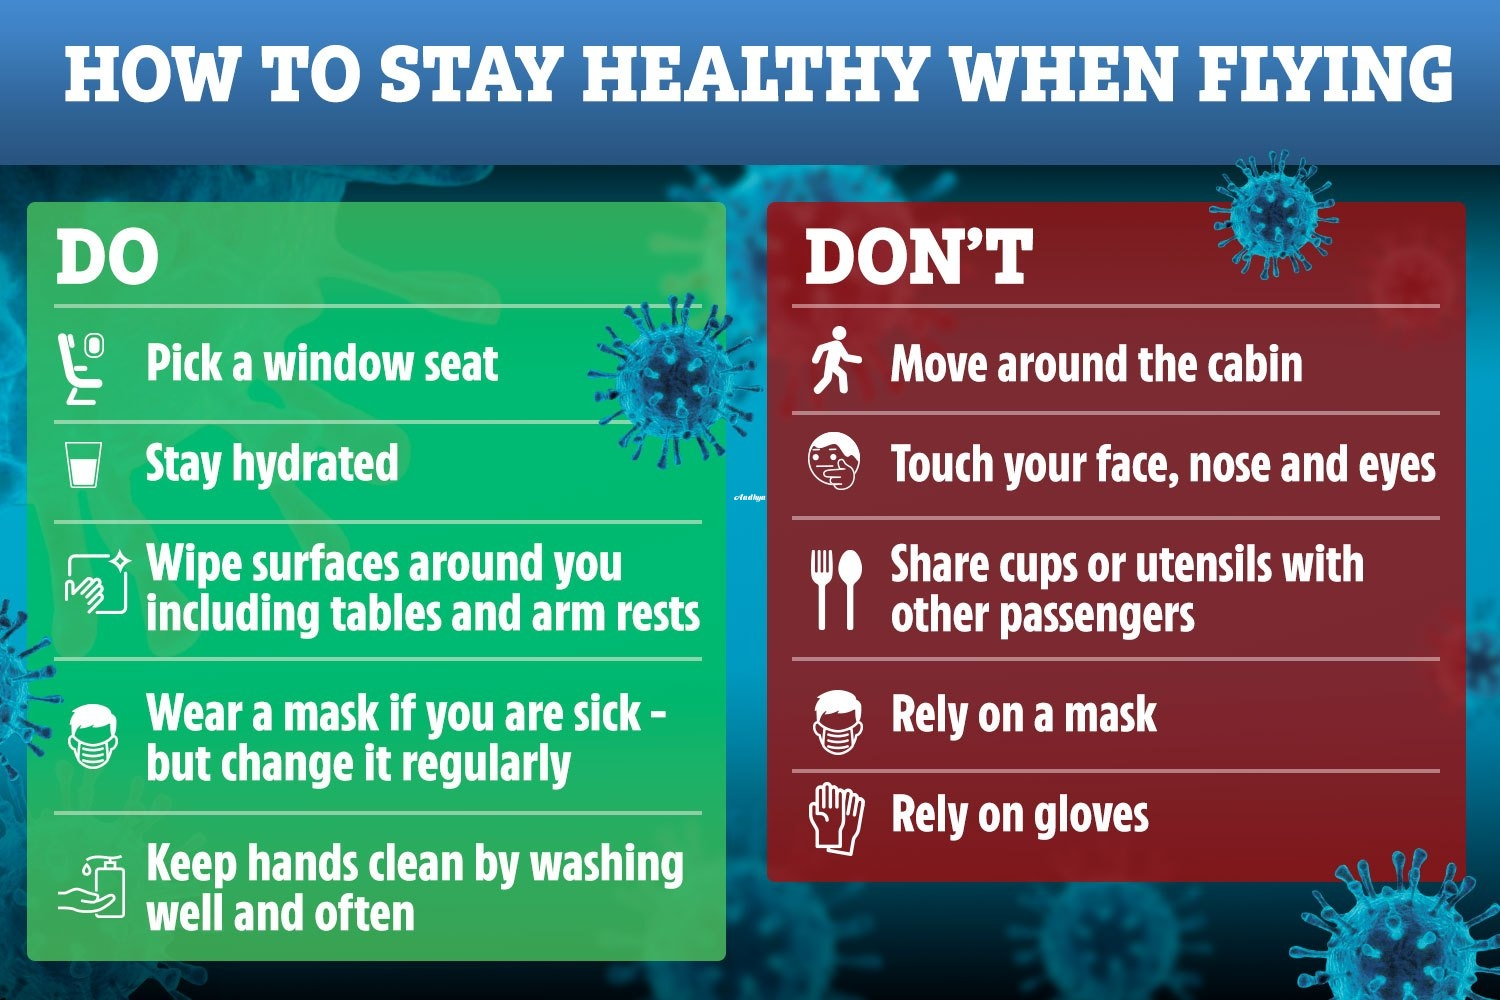 Aadhya what to do for protect from coronavirus?